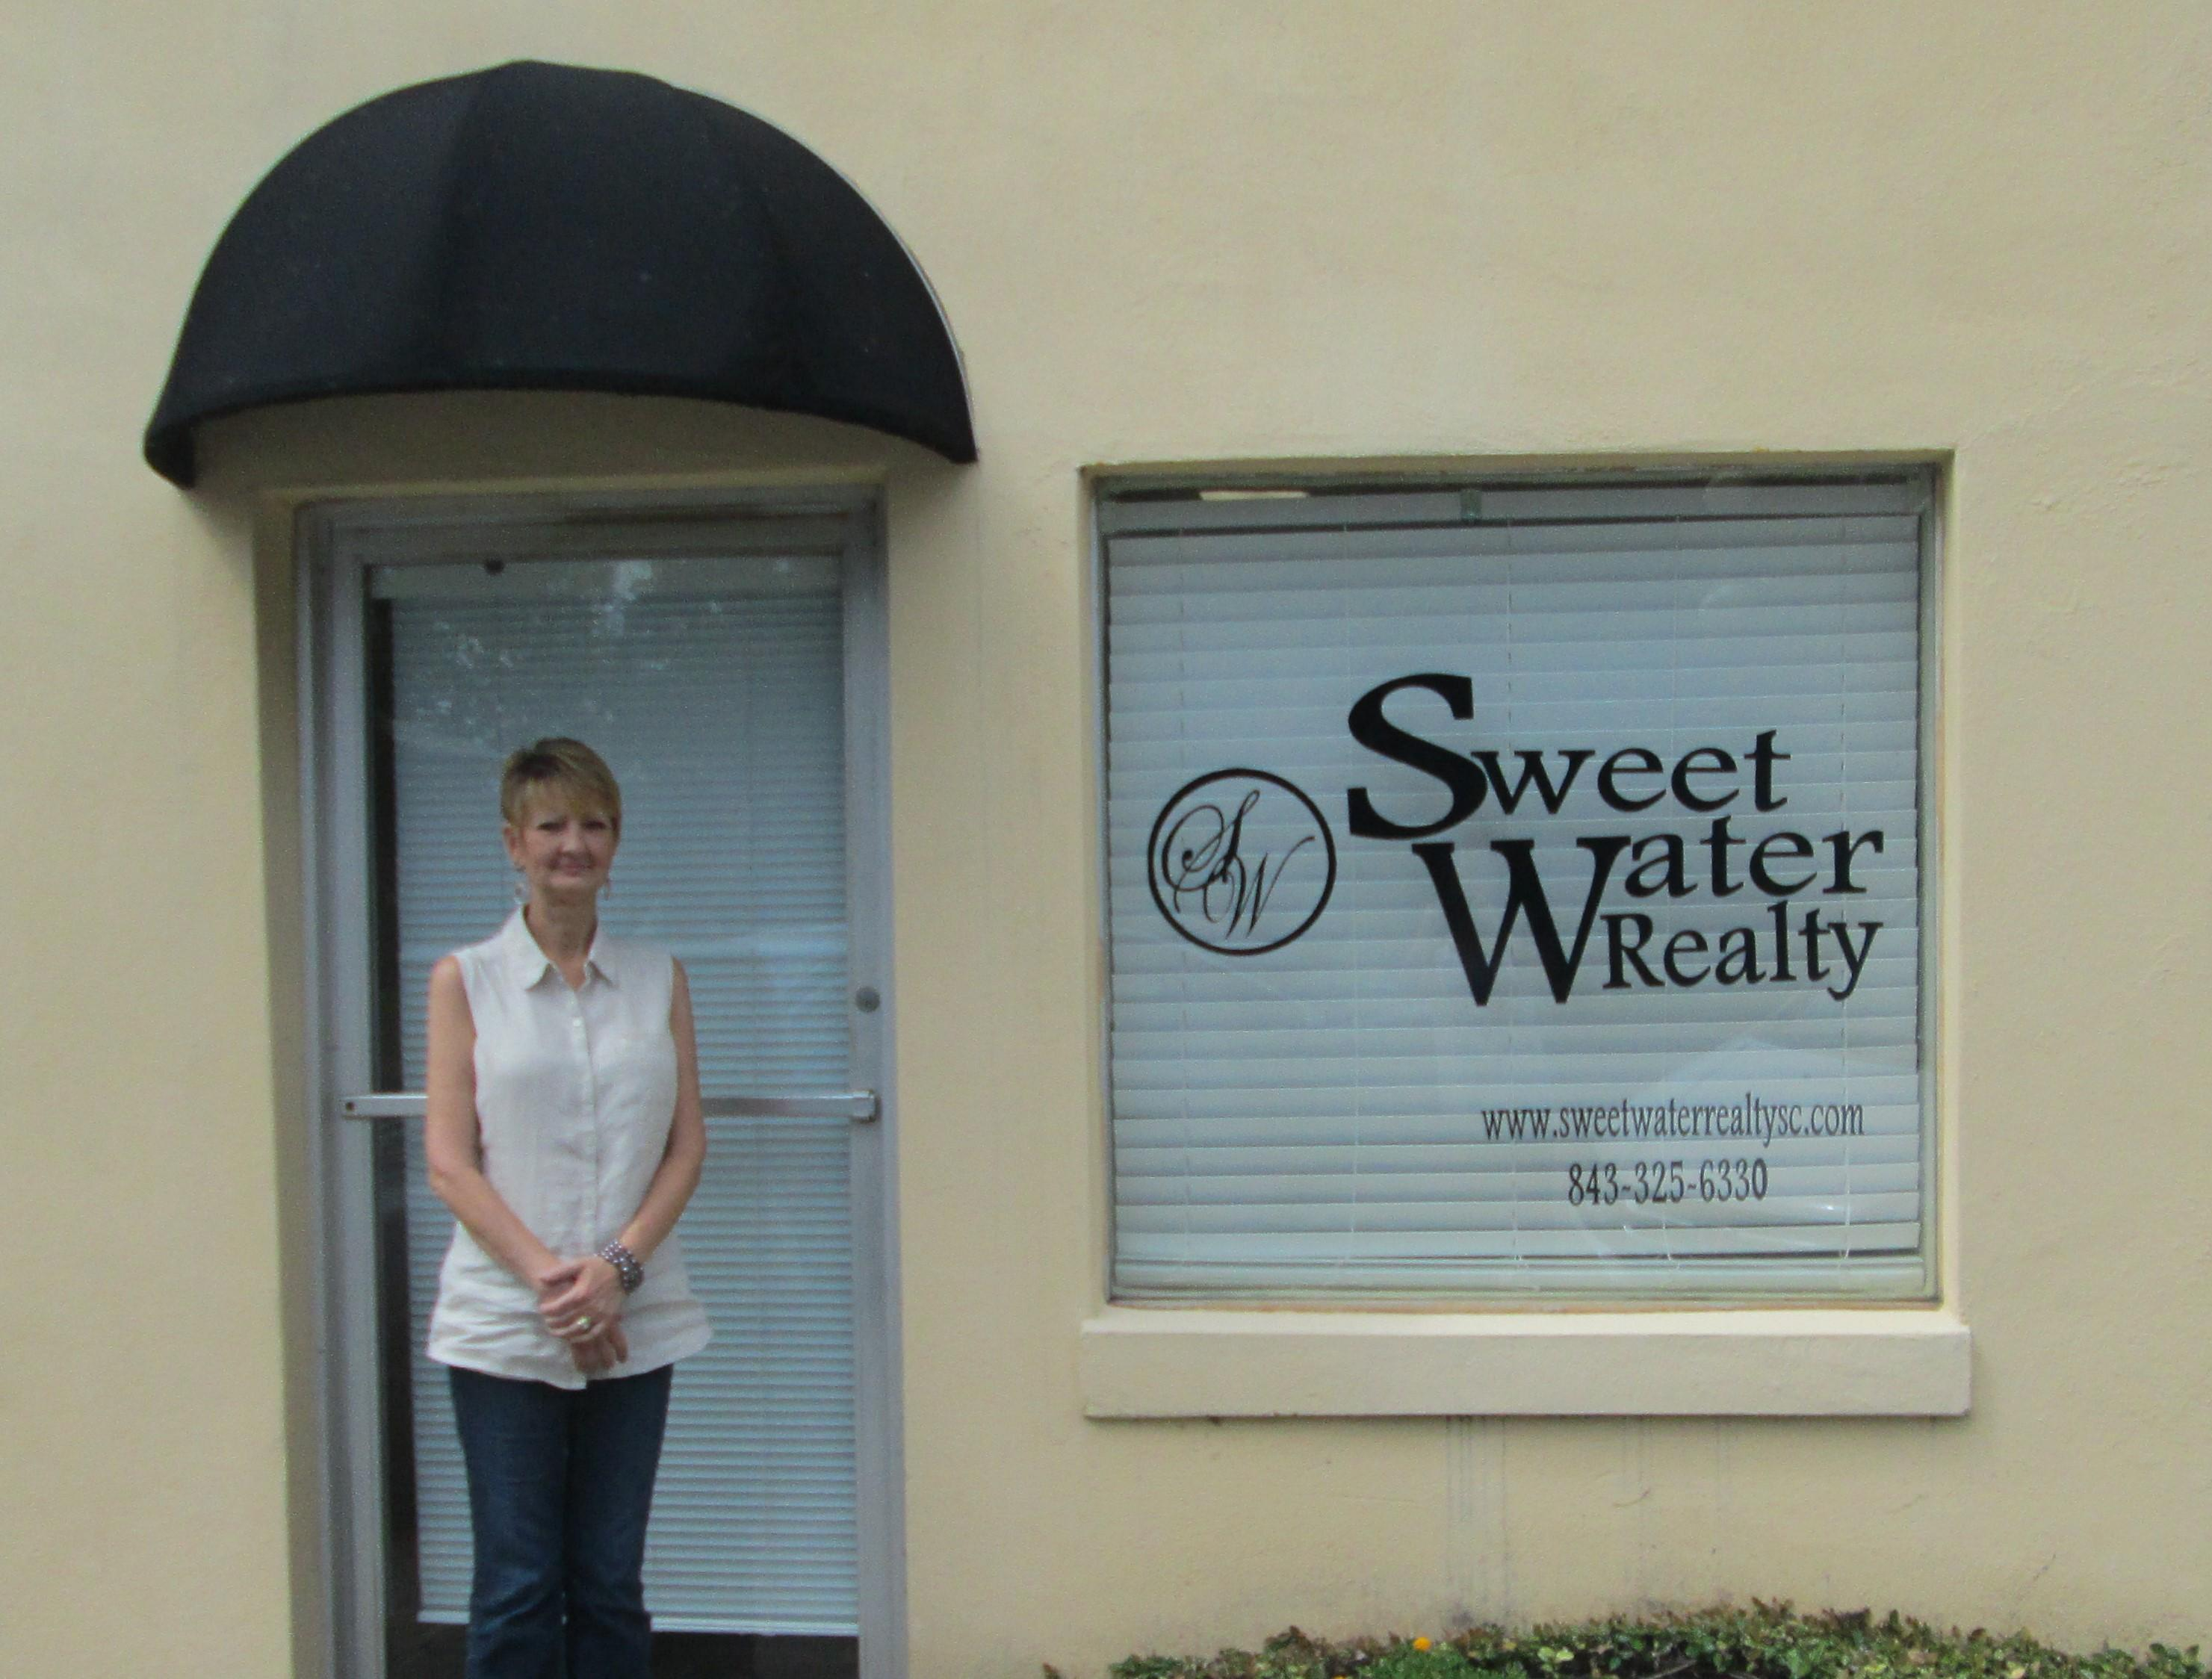 Sweet Water Realty